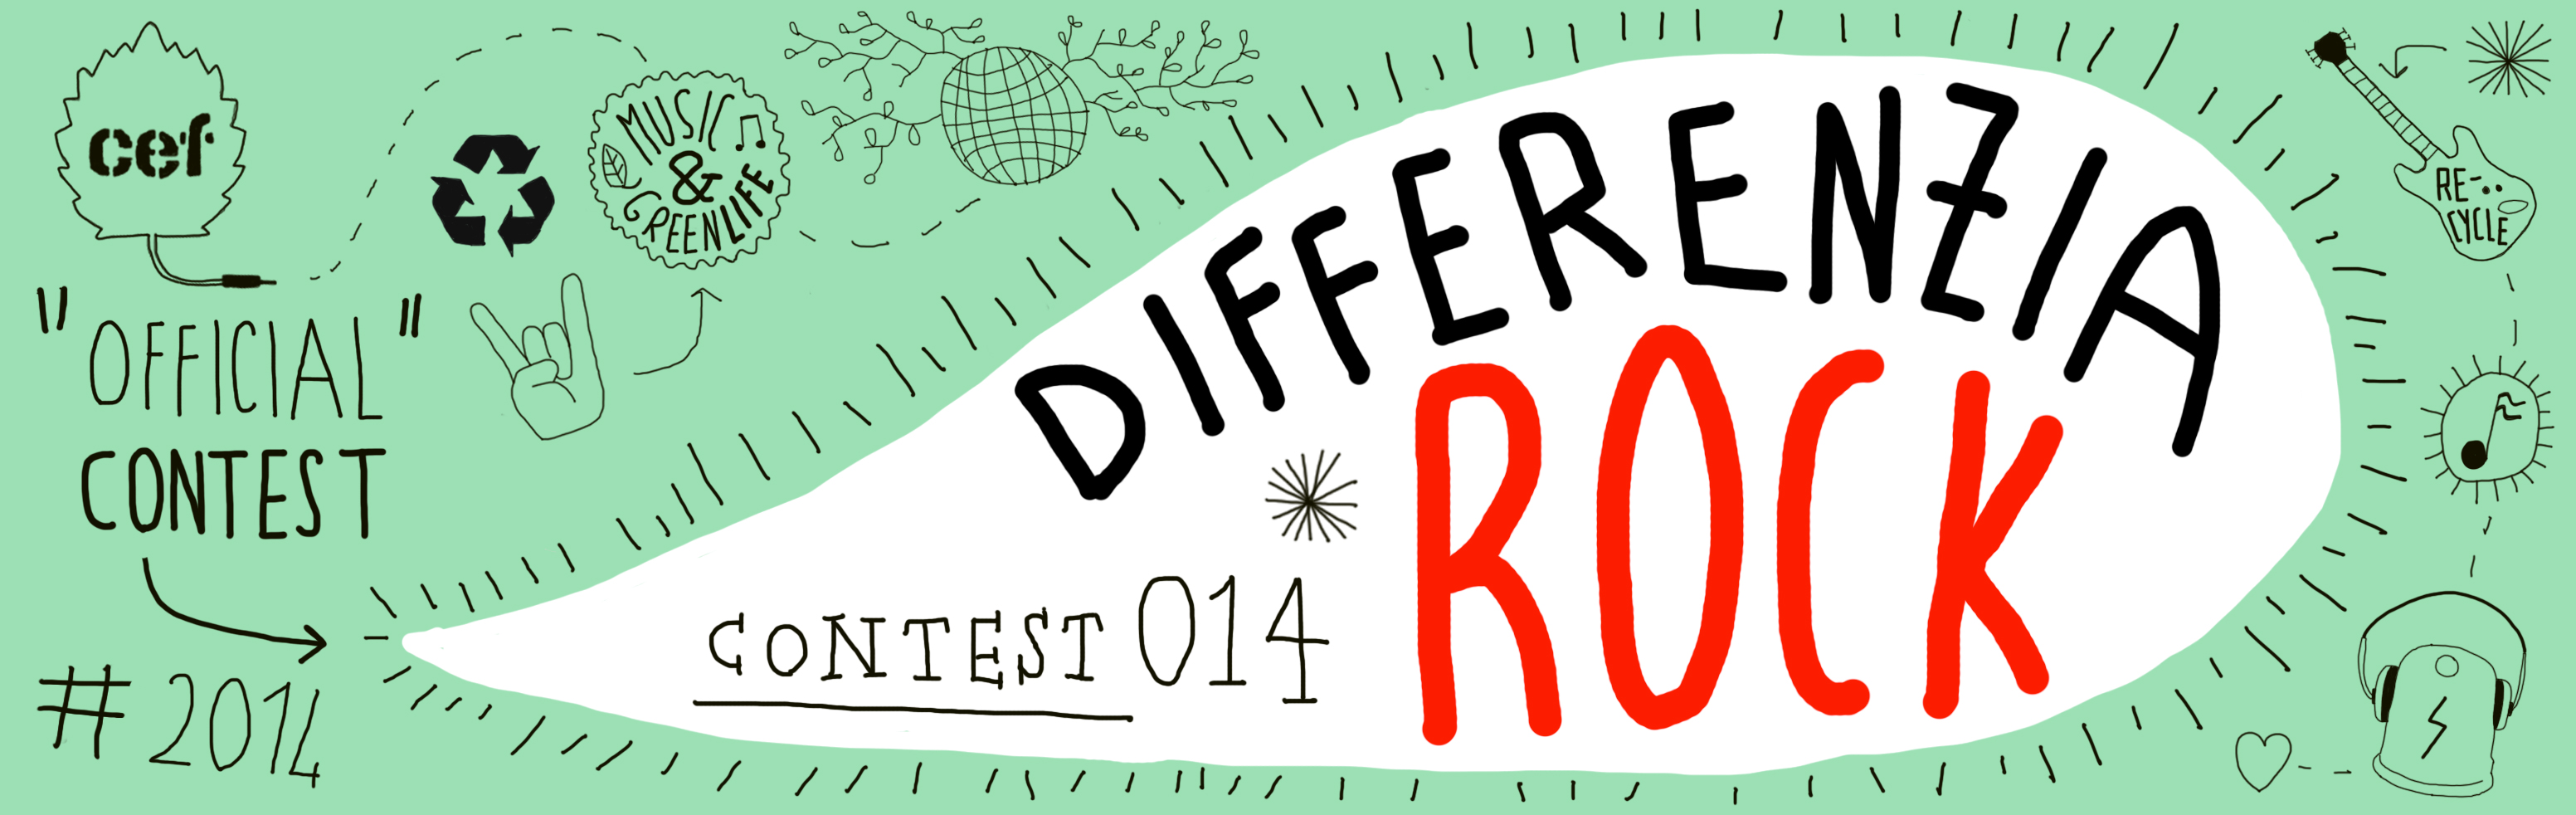 CEF DifferenziaRock Contest 2014